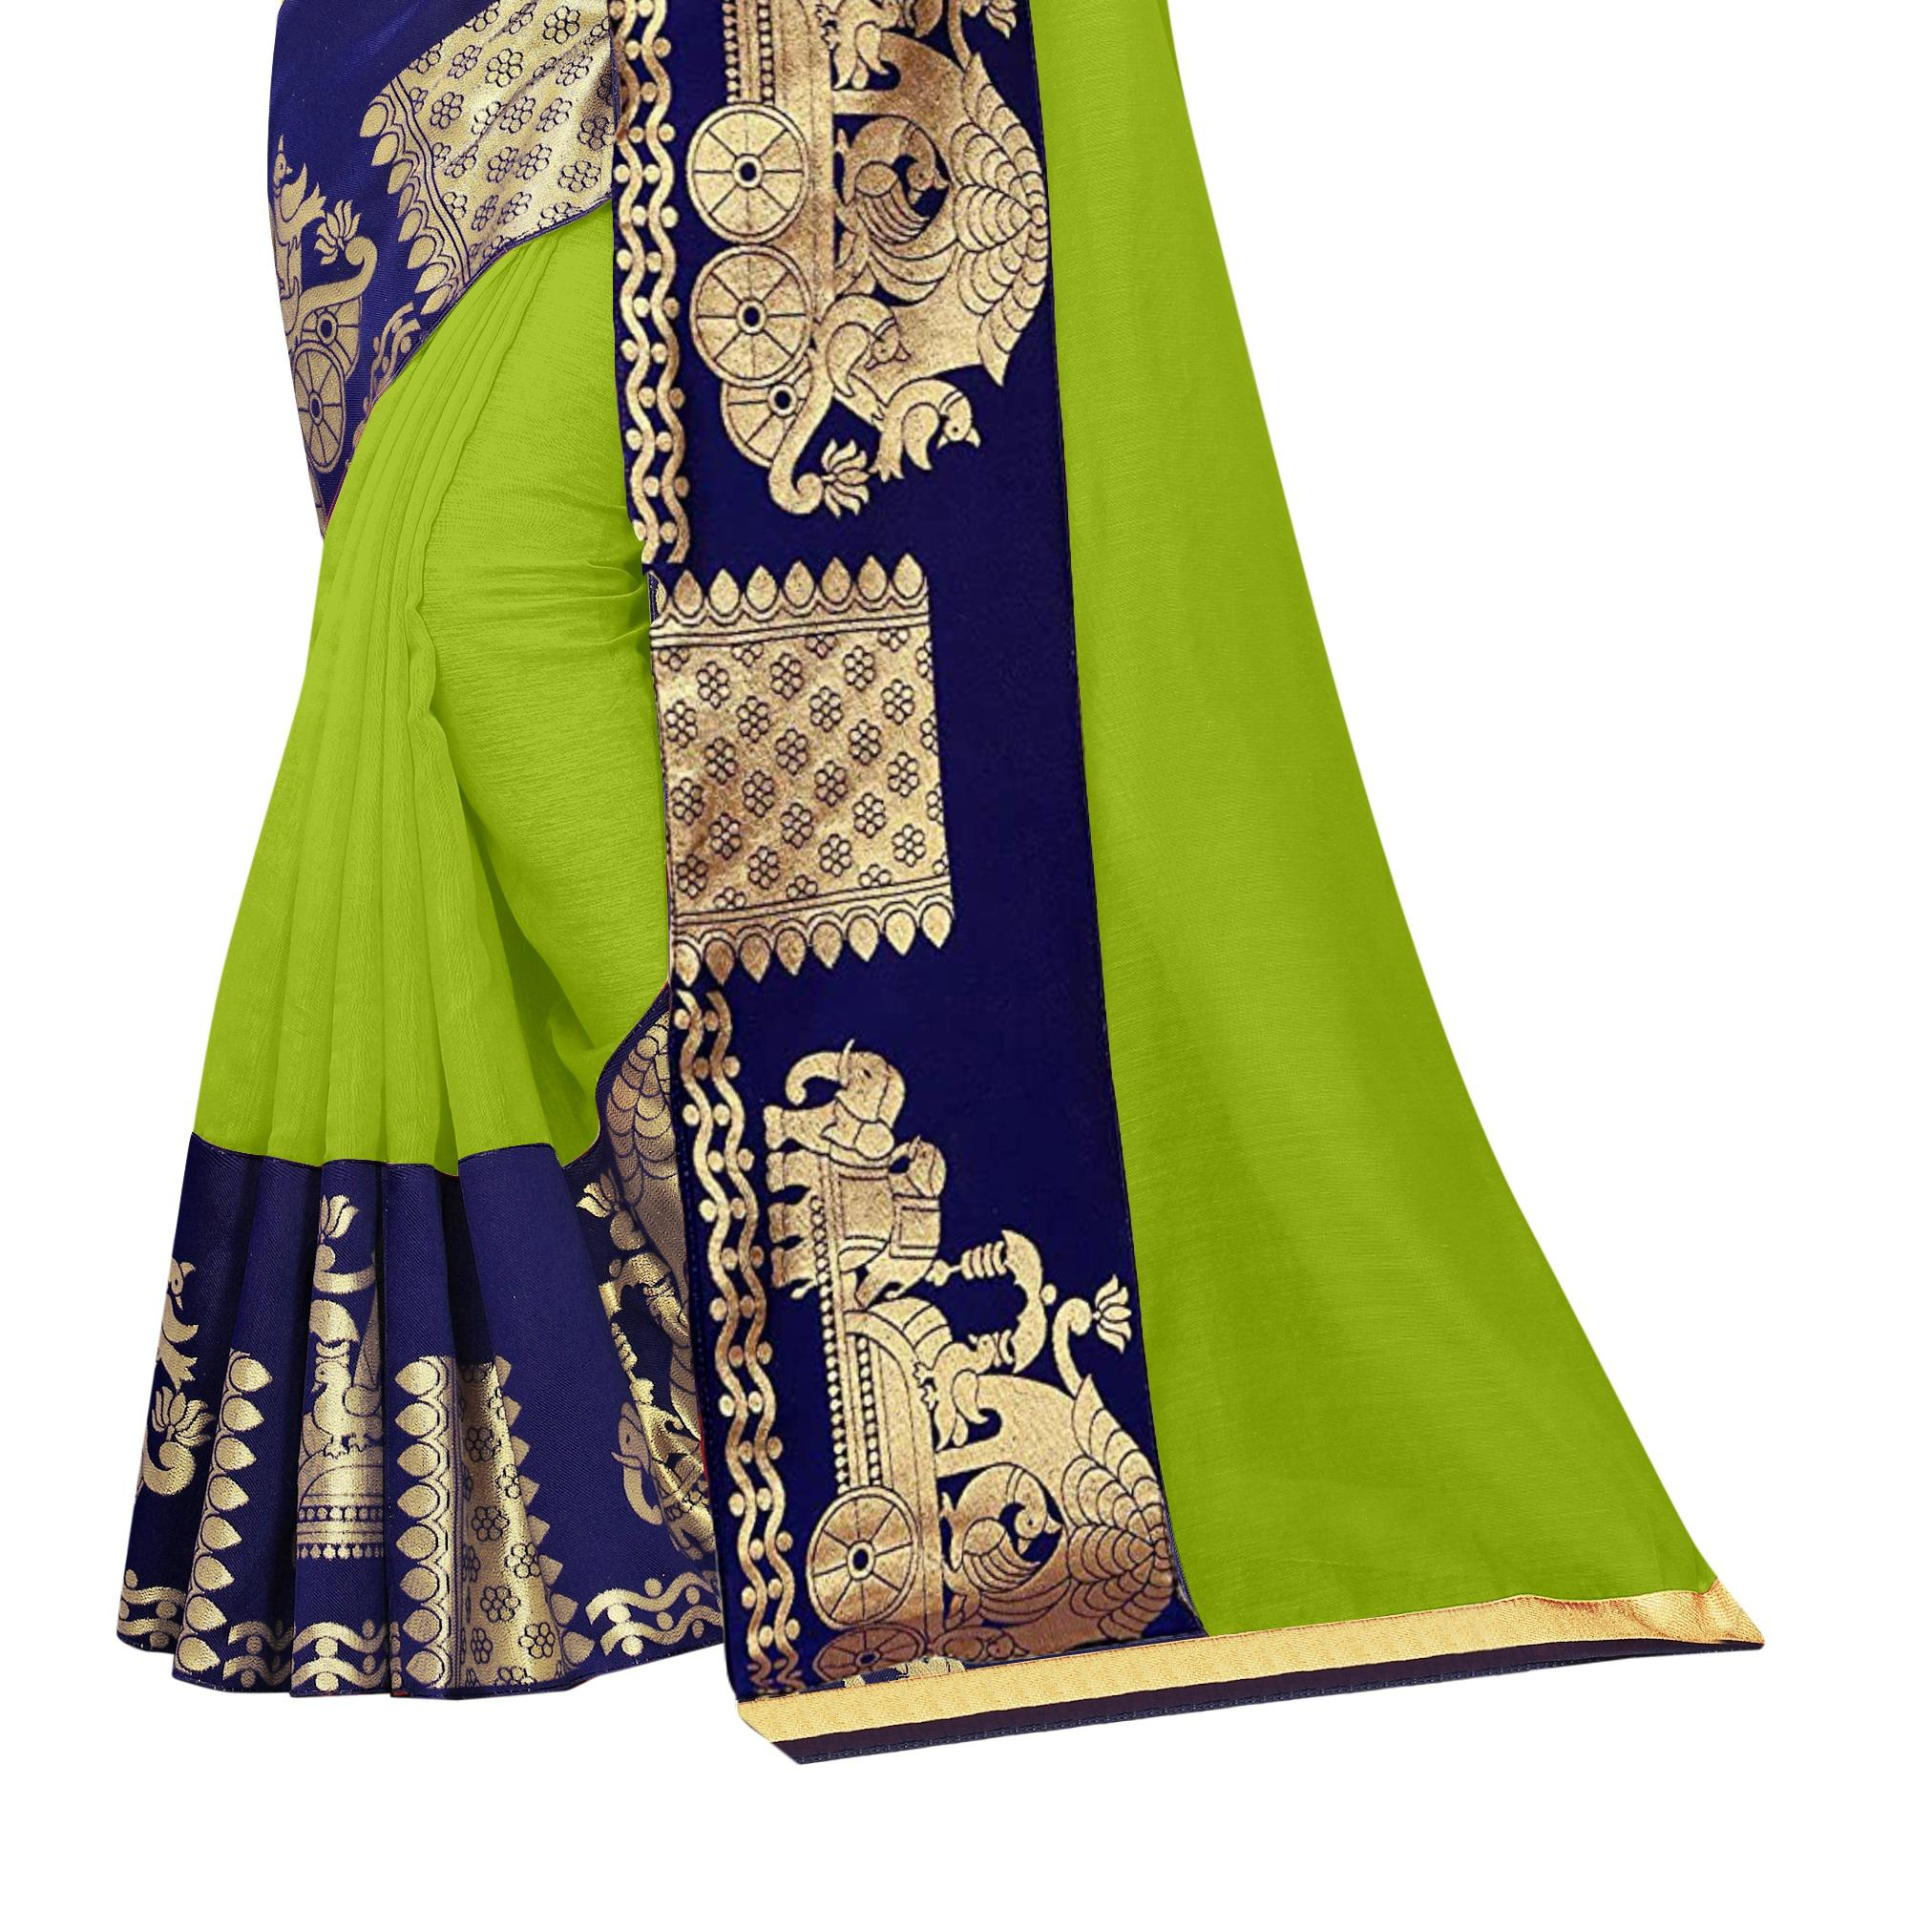 Wazood - Parrot Green Colored Festive Wear Jacquard Lace Chanderi Cotton Saree